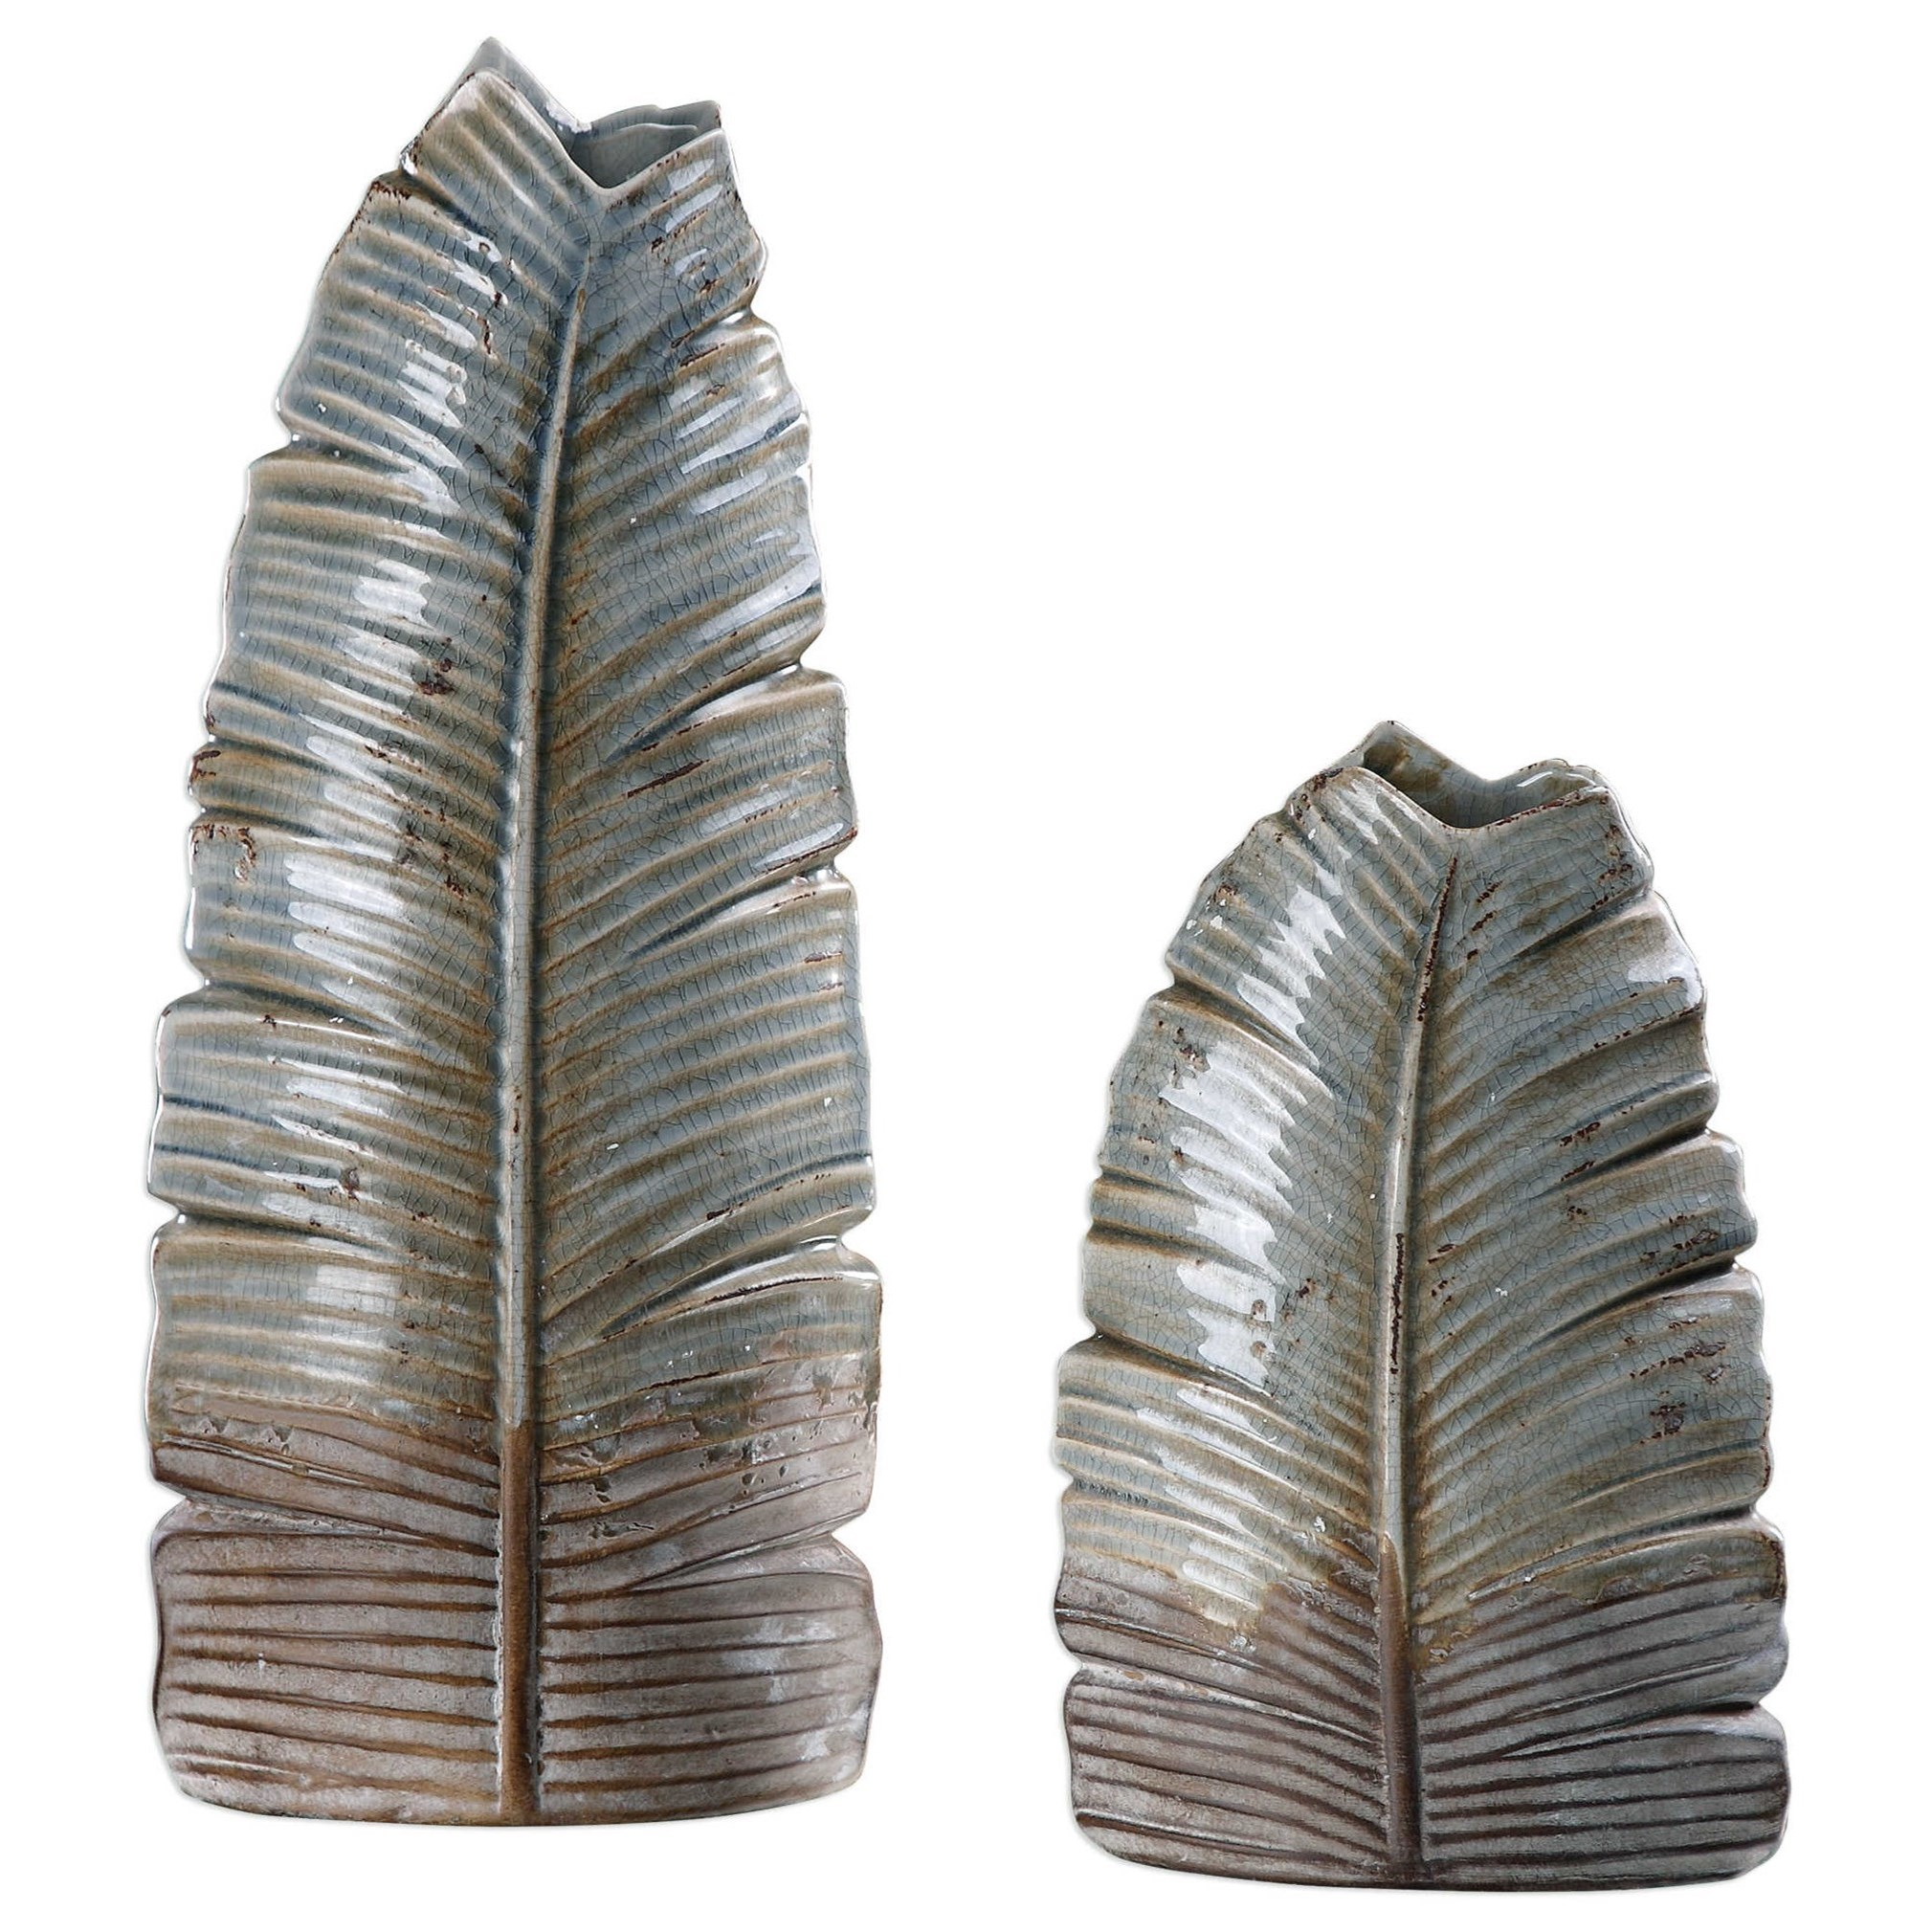 Accessories - Vases and Urns Invano Leaf Vases (Set of 2) by Uttermost at Suburban Furniture